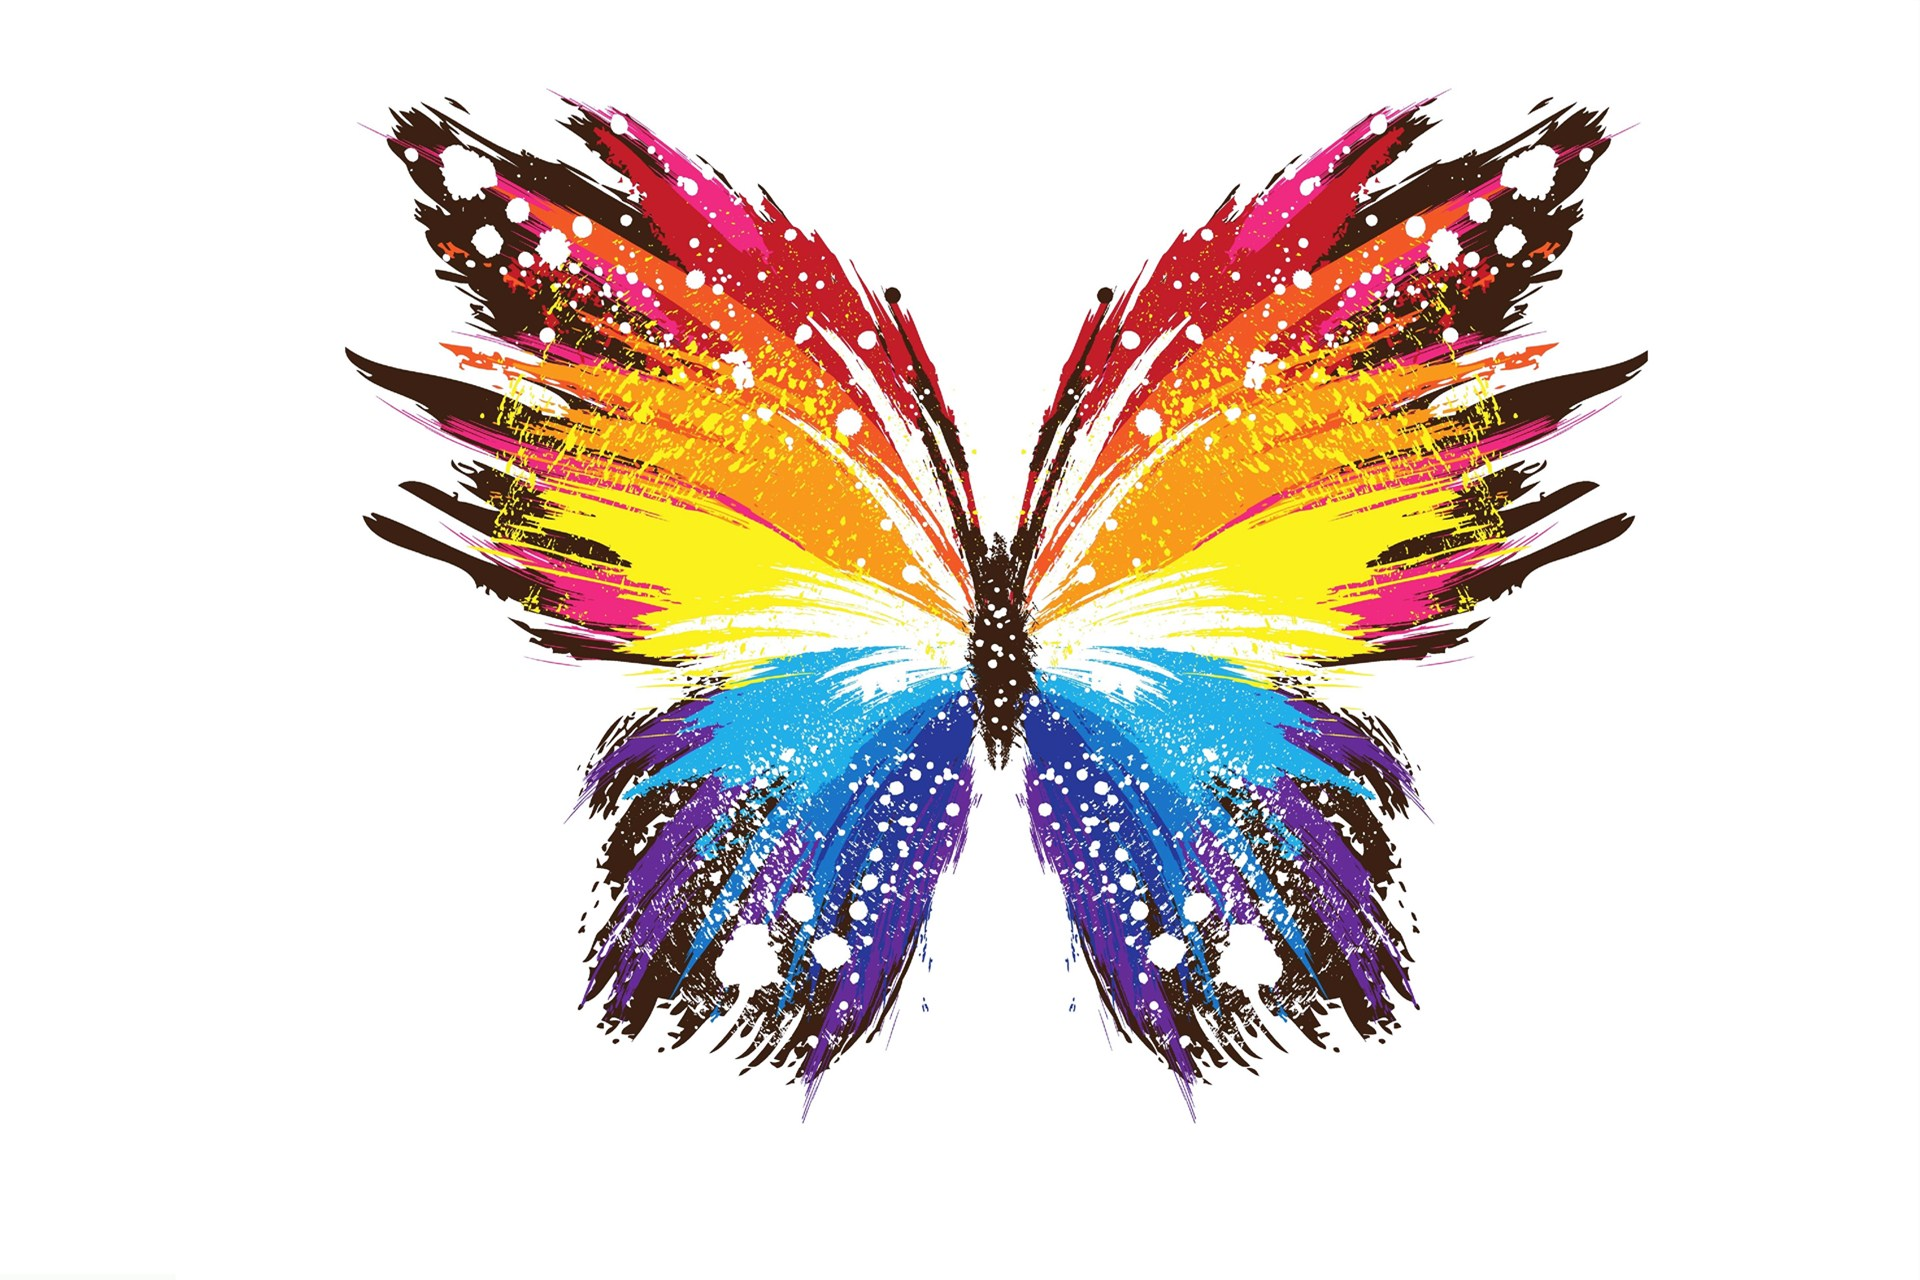 Colorful Butterfly Wallpapers 20 Background Wallpaper   Hivewallpaper 1920x1280